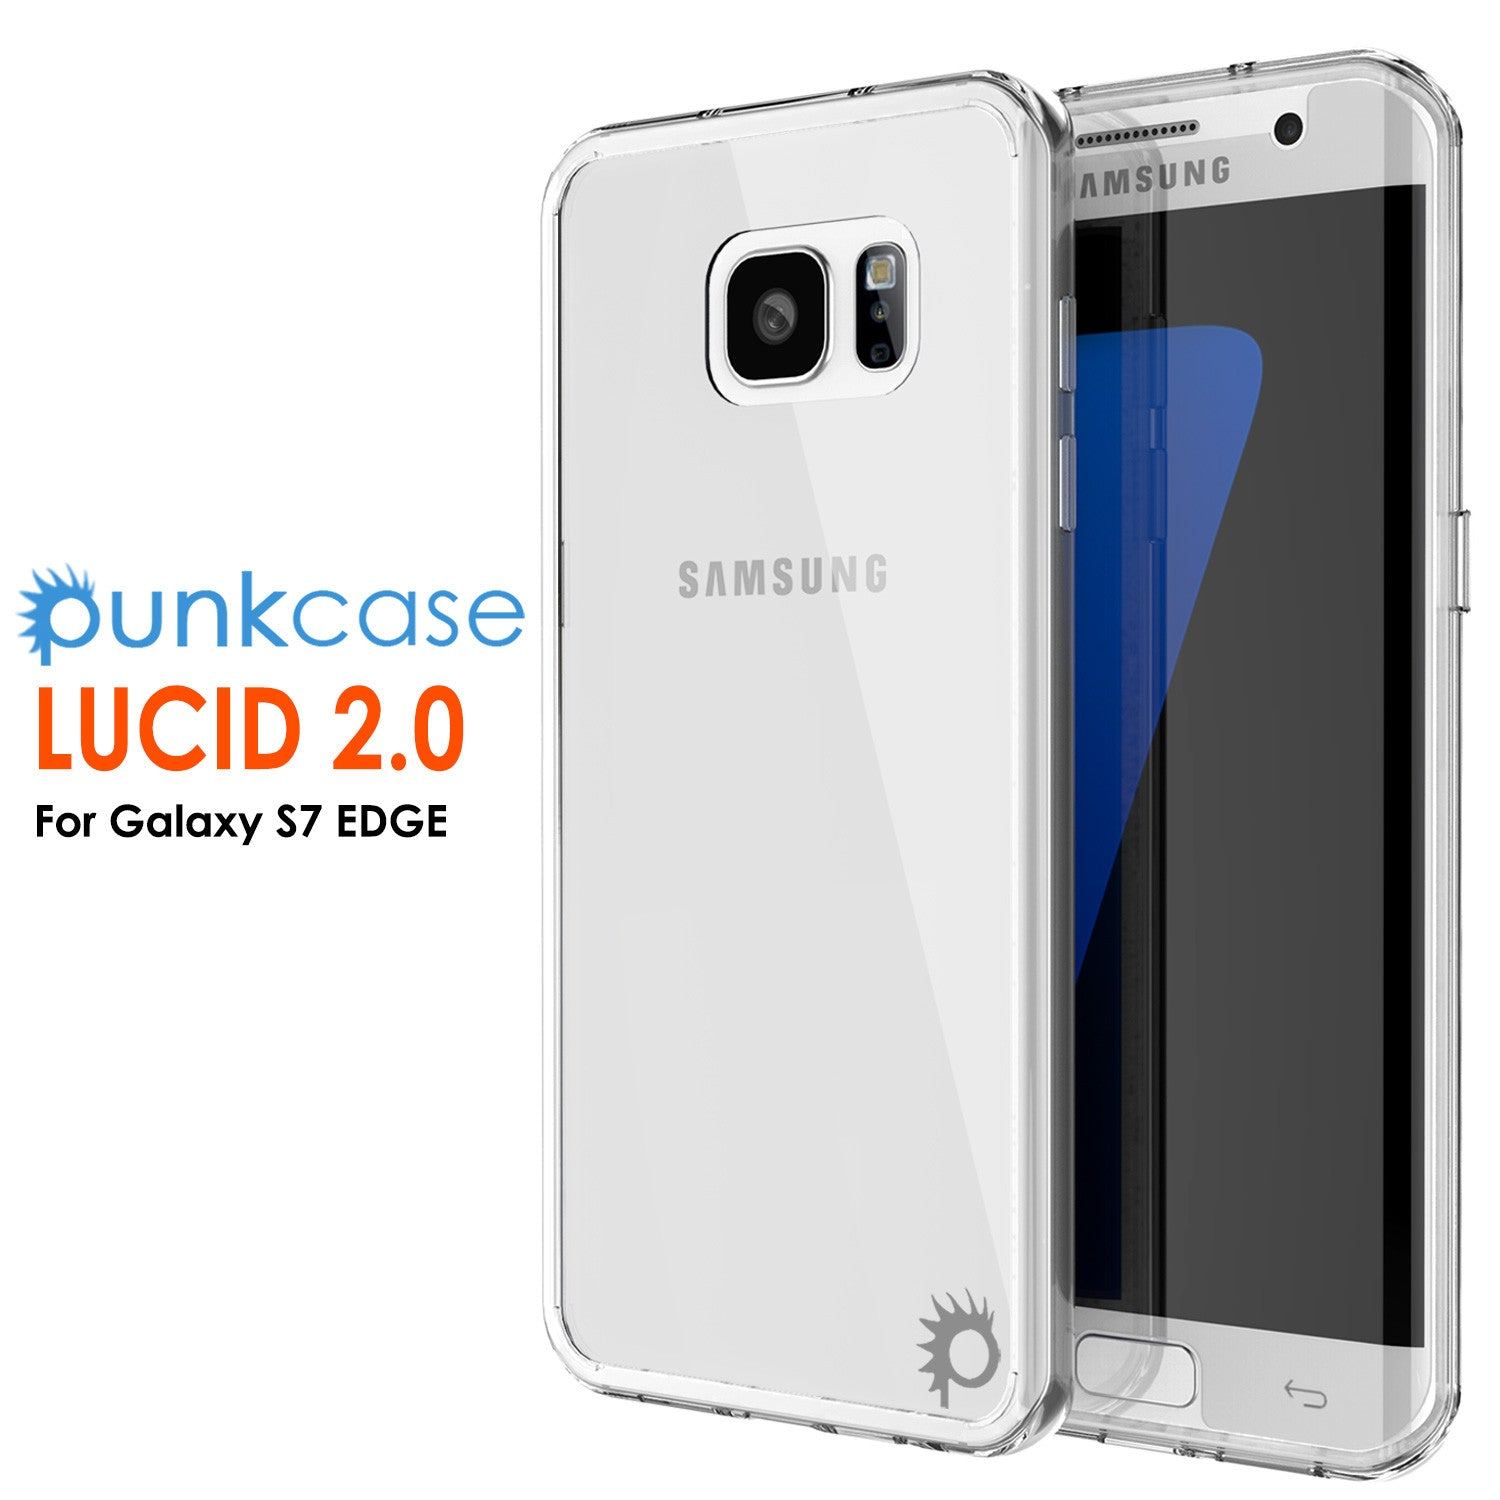 S7 Edge Case Punkcase® LUCID 2.0 Clear Series w/ PUNK SHIELD Screen Protector | Ultra Fit